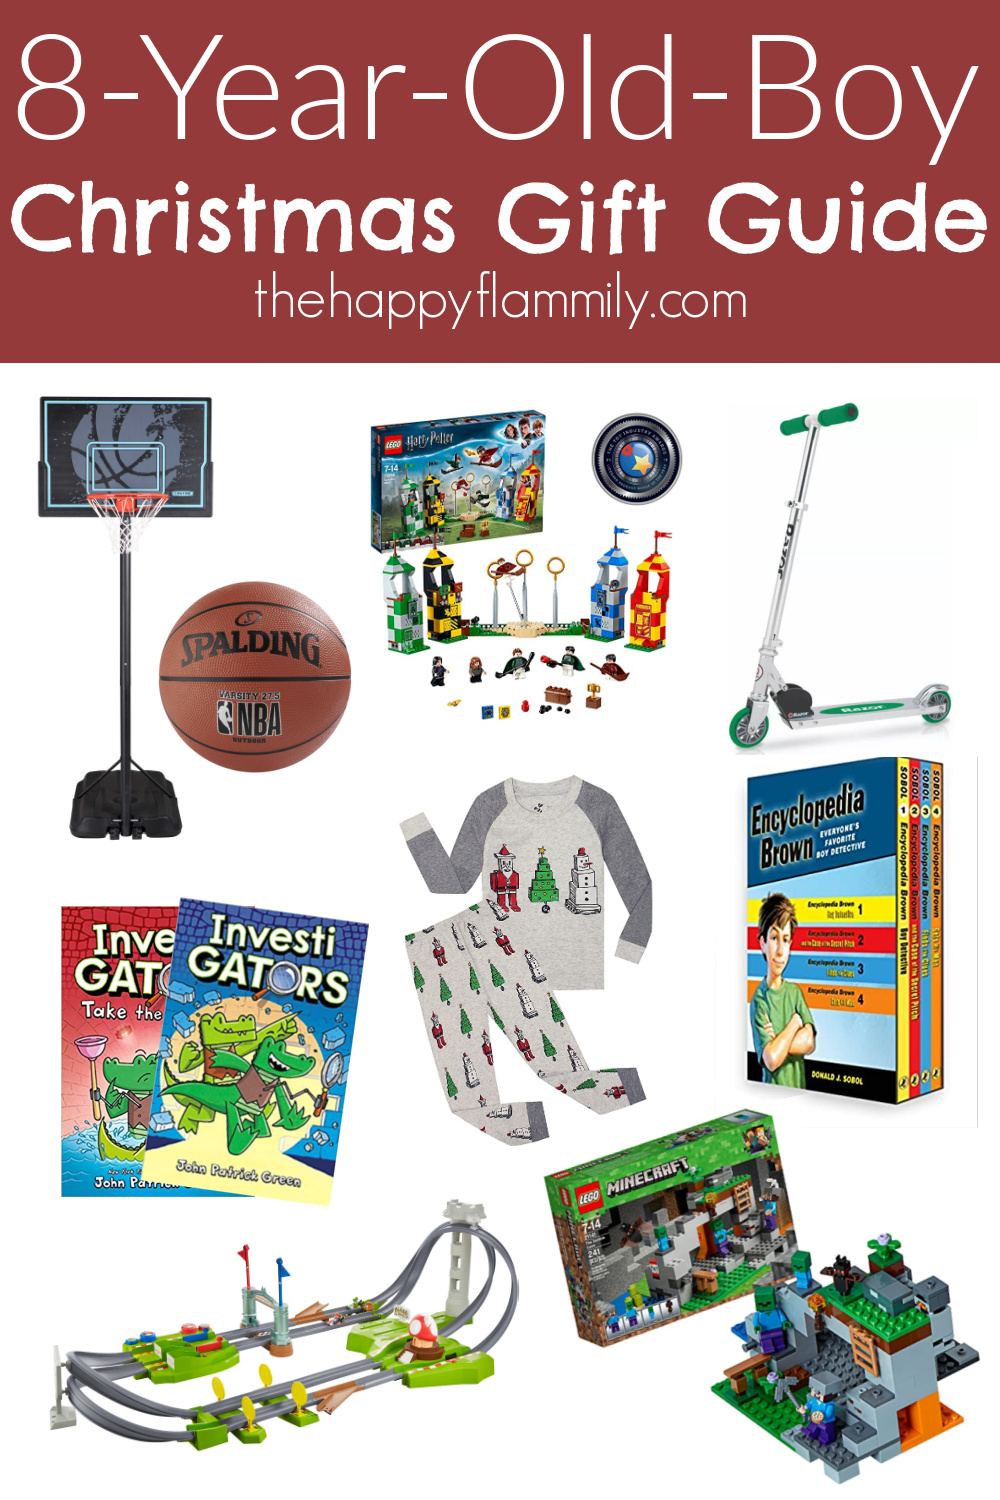 Toys for 8-10 year old boy. Best toys for 8-year-old boy 2020. Gift ideas for 8 year old boy who likes sports. Unusual gifts for 8-year-olds. Best toys for 8 year old boy Australia. Practical gifts for 8 year old boy. Lego gifts for 8 year old boy. Toys for 6-8 Year olds. #toys #gifts #christmas #holiday #Boys #giftguide